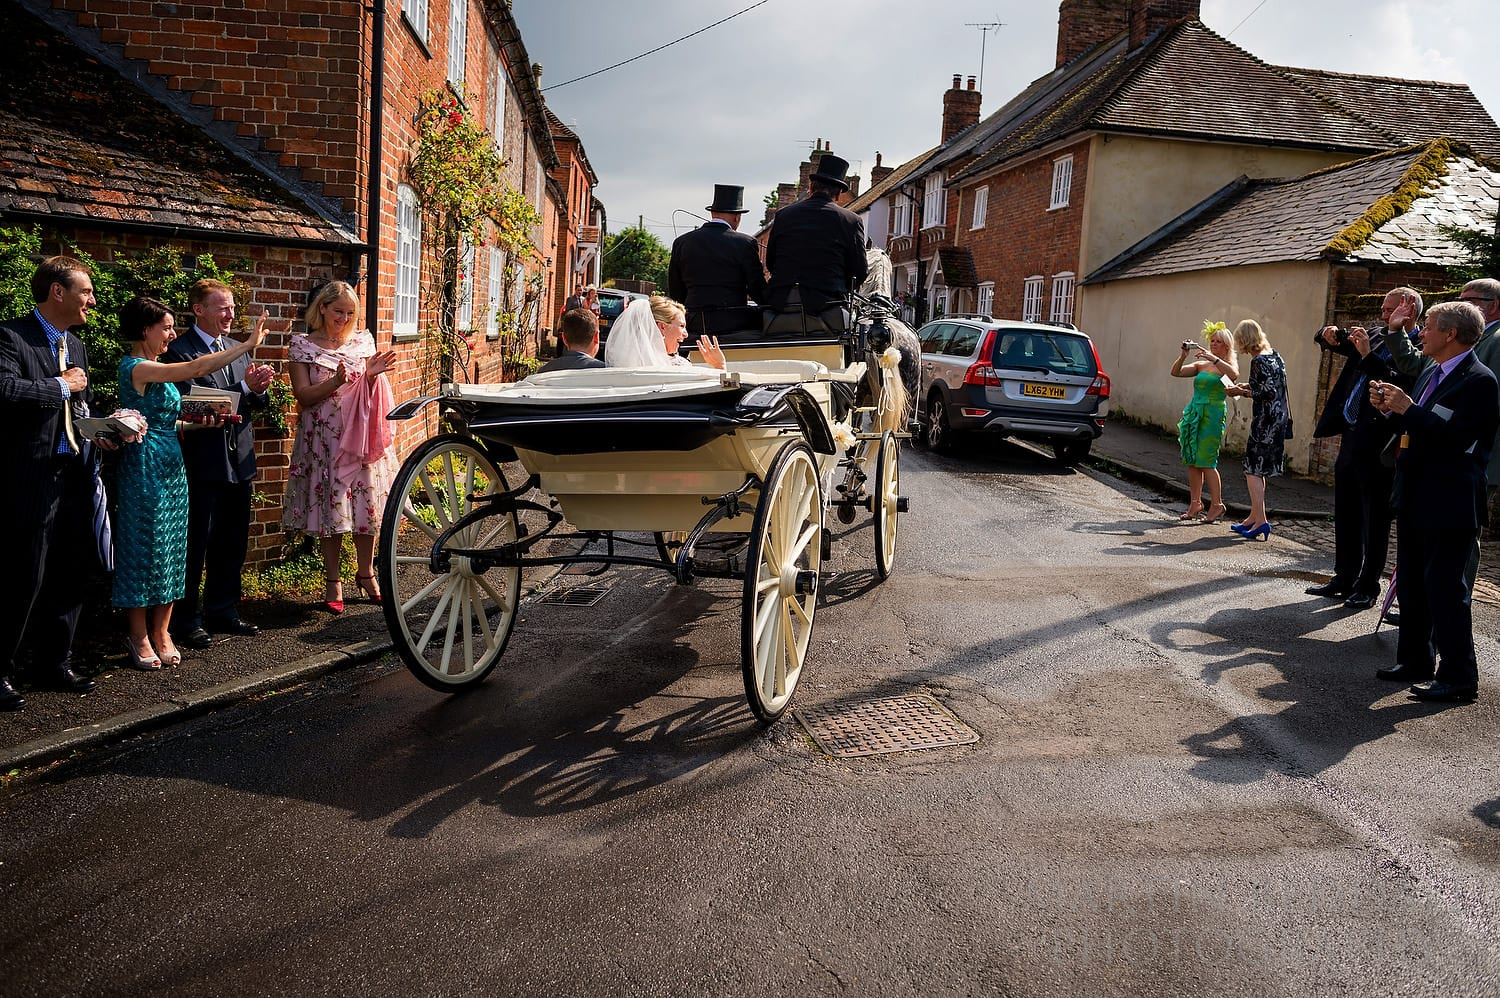 Bride and groom leave the church in the horsedrawn carriage